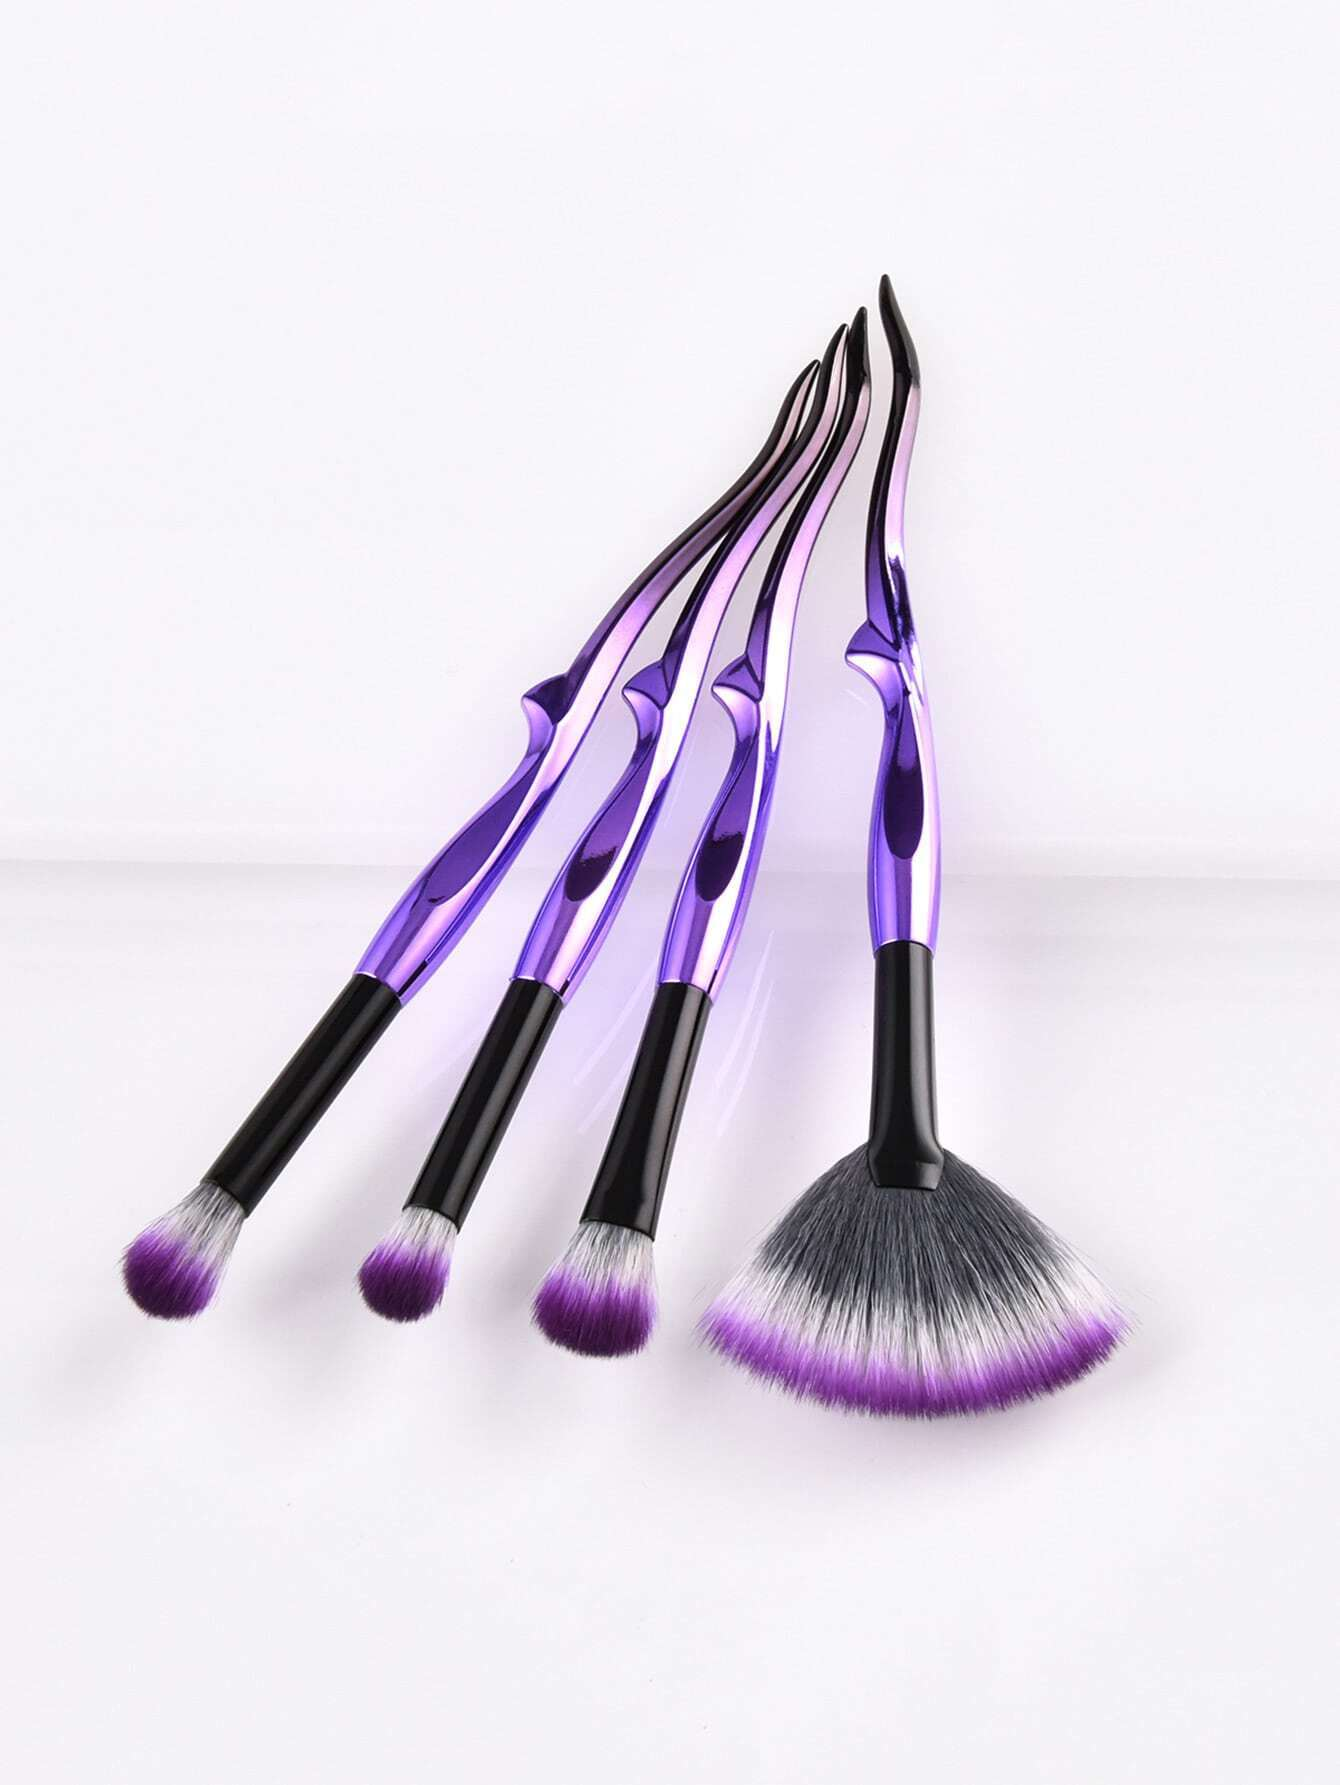 Image of Ombre Handle Makeup Brush 4pcs